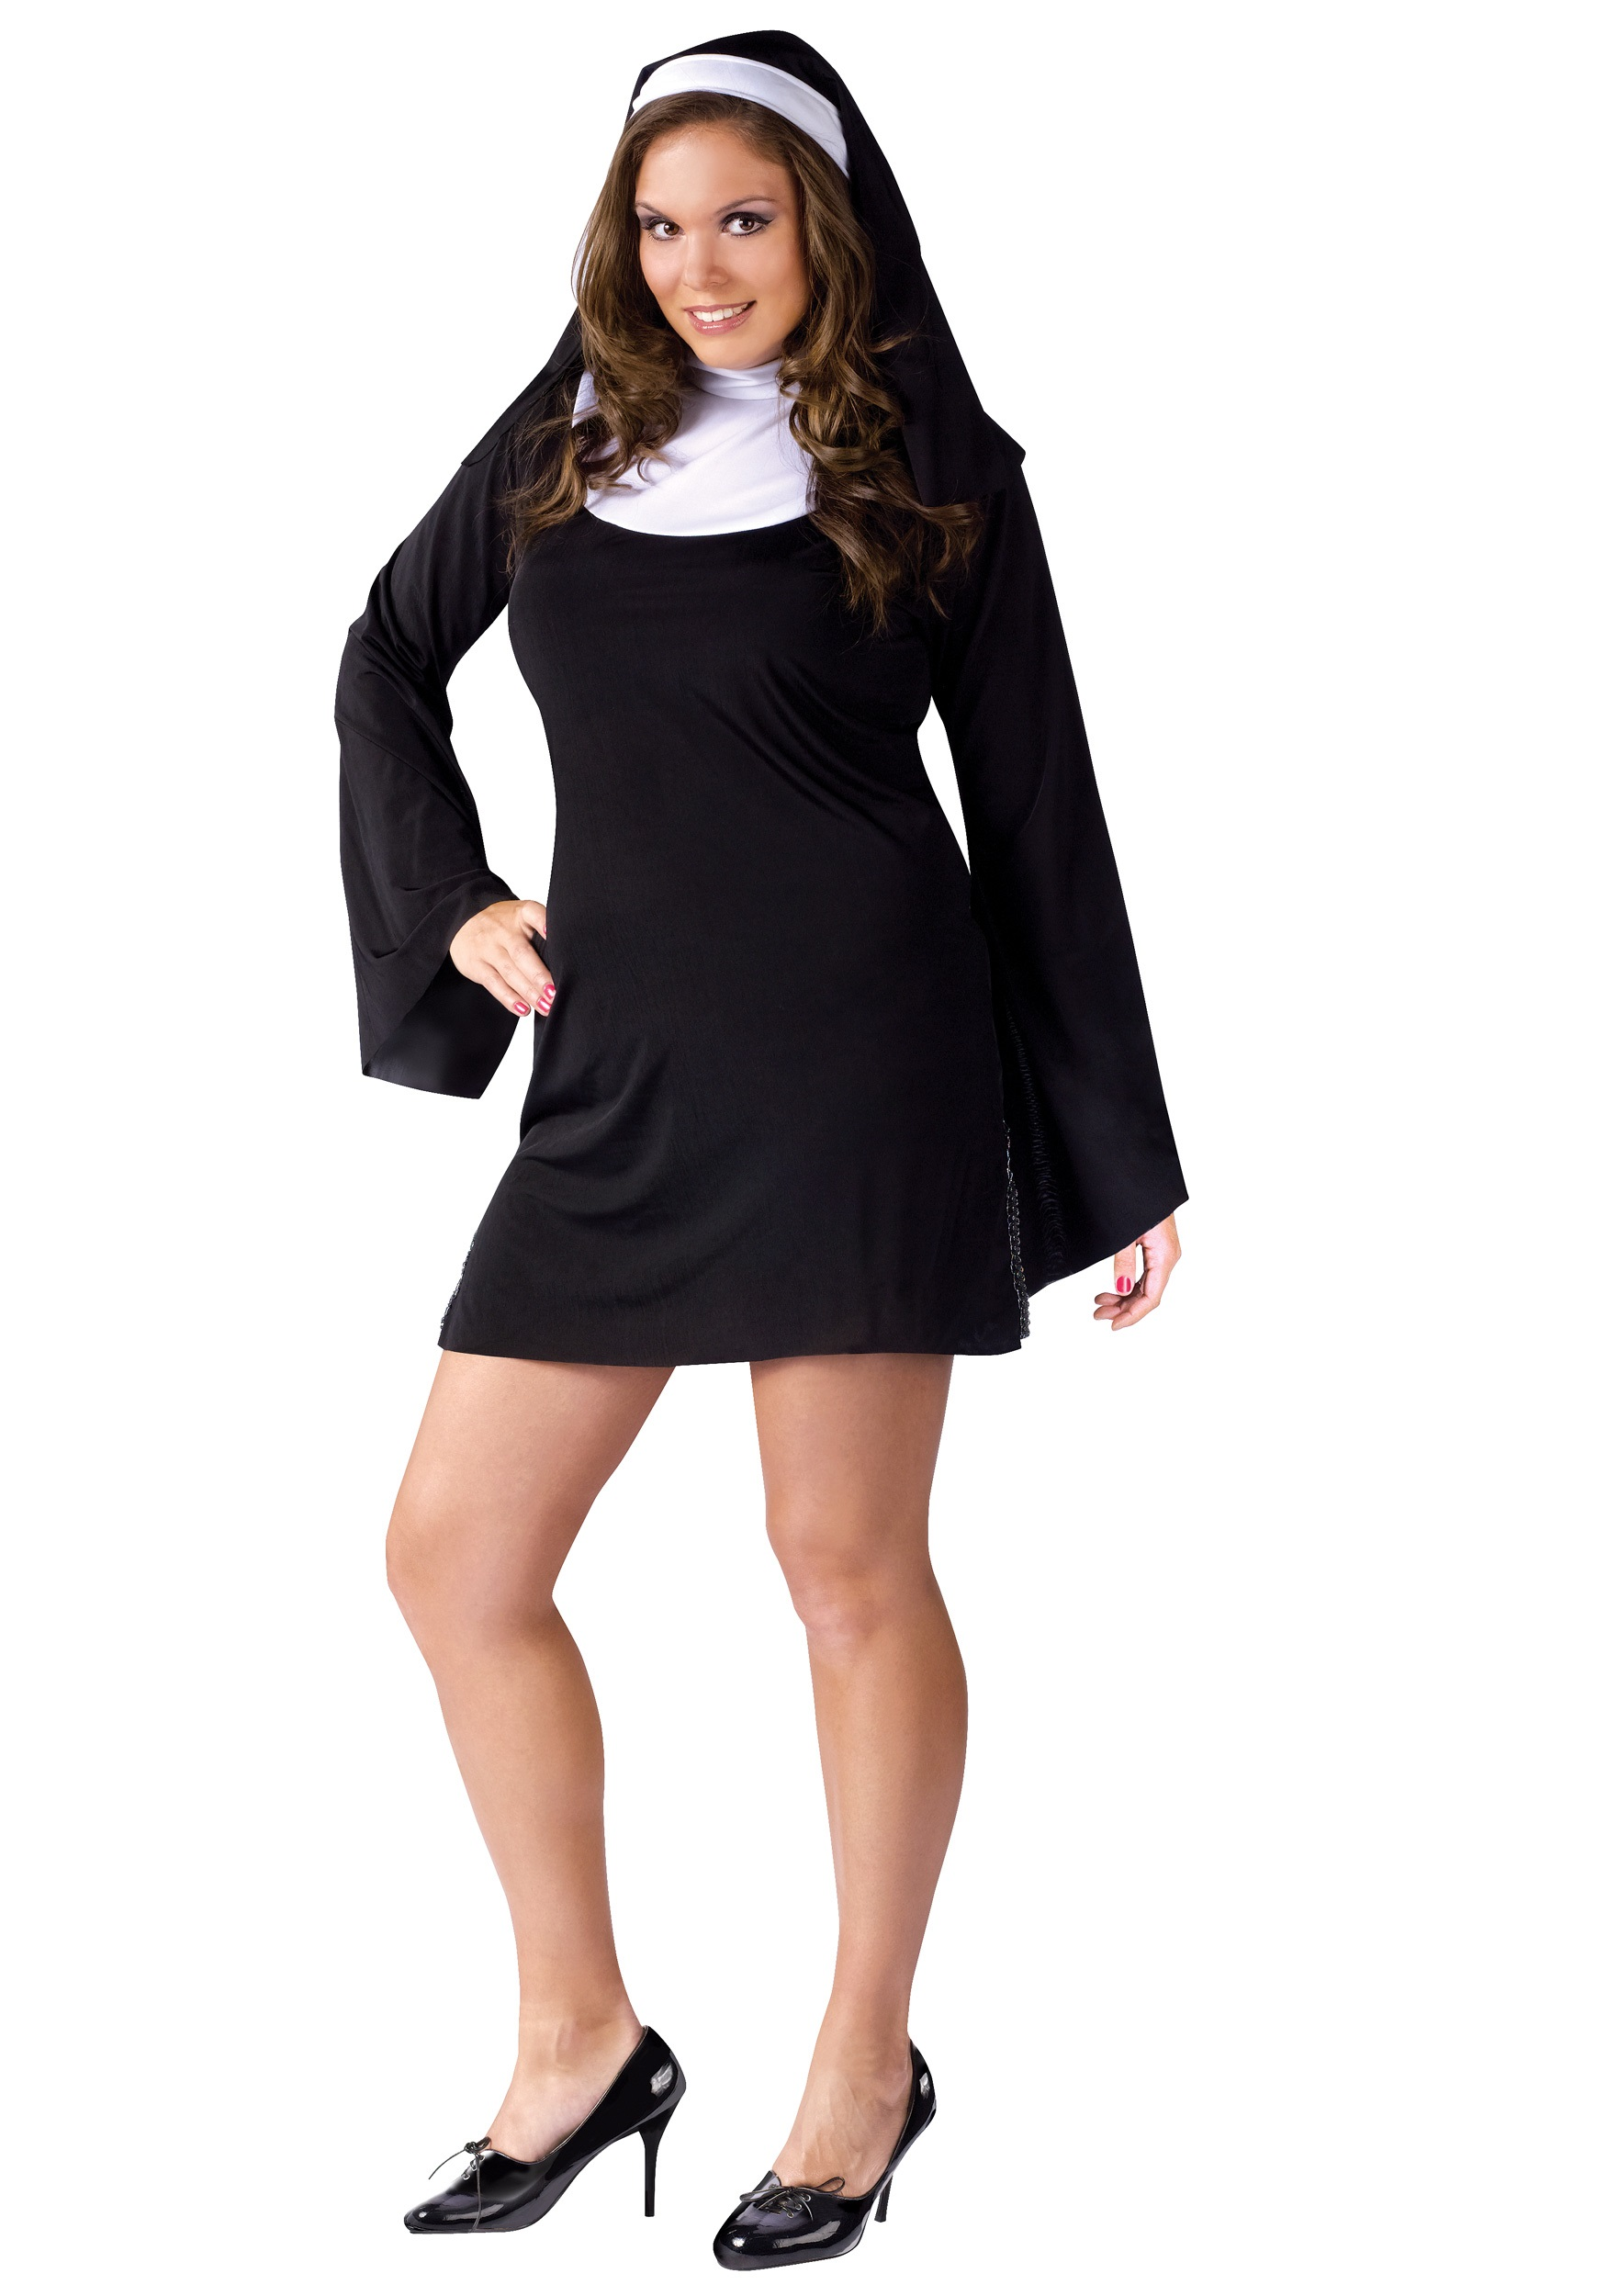 sc 1 st  Halloween Costumes UK & Plus Size Naughty Nun Costume